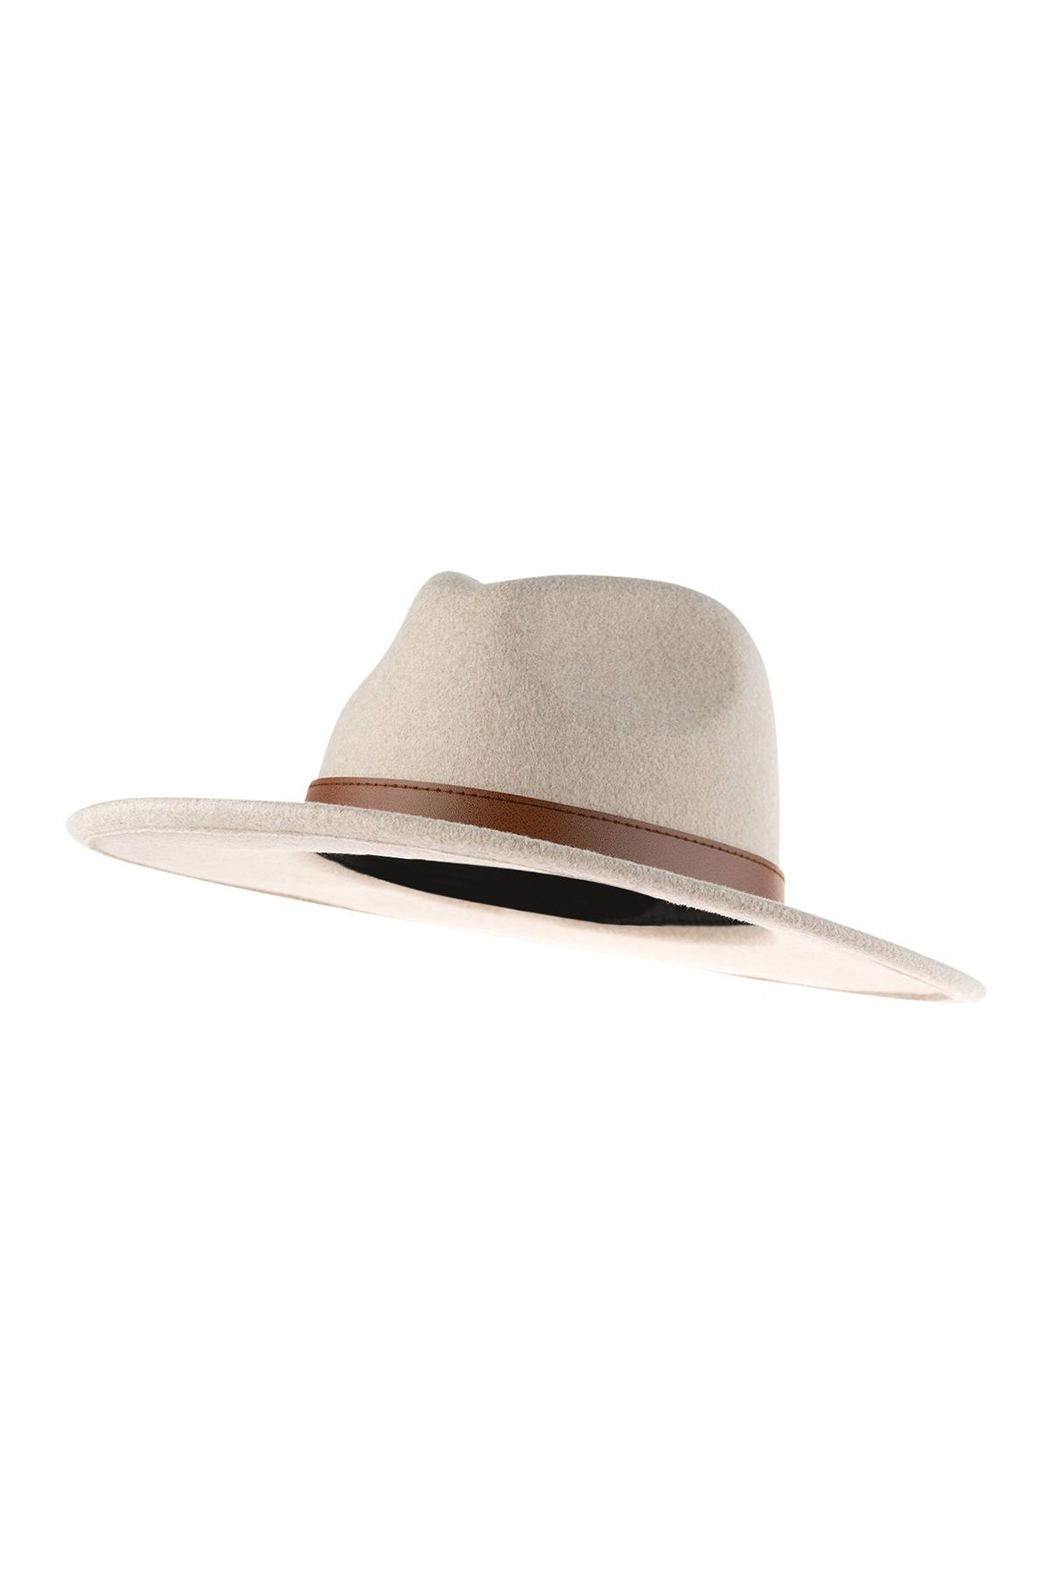 Riah Fashion Neutral Colors Fashion Hat With Leather Belt Accent - Side Cropped Image